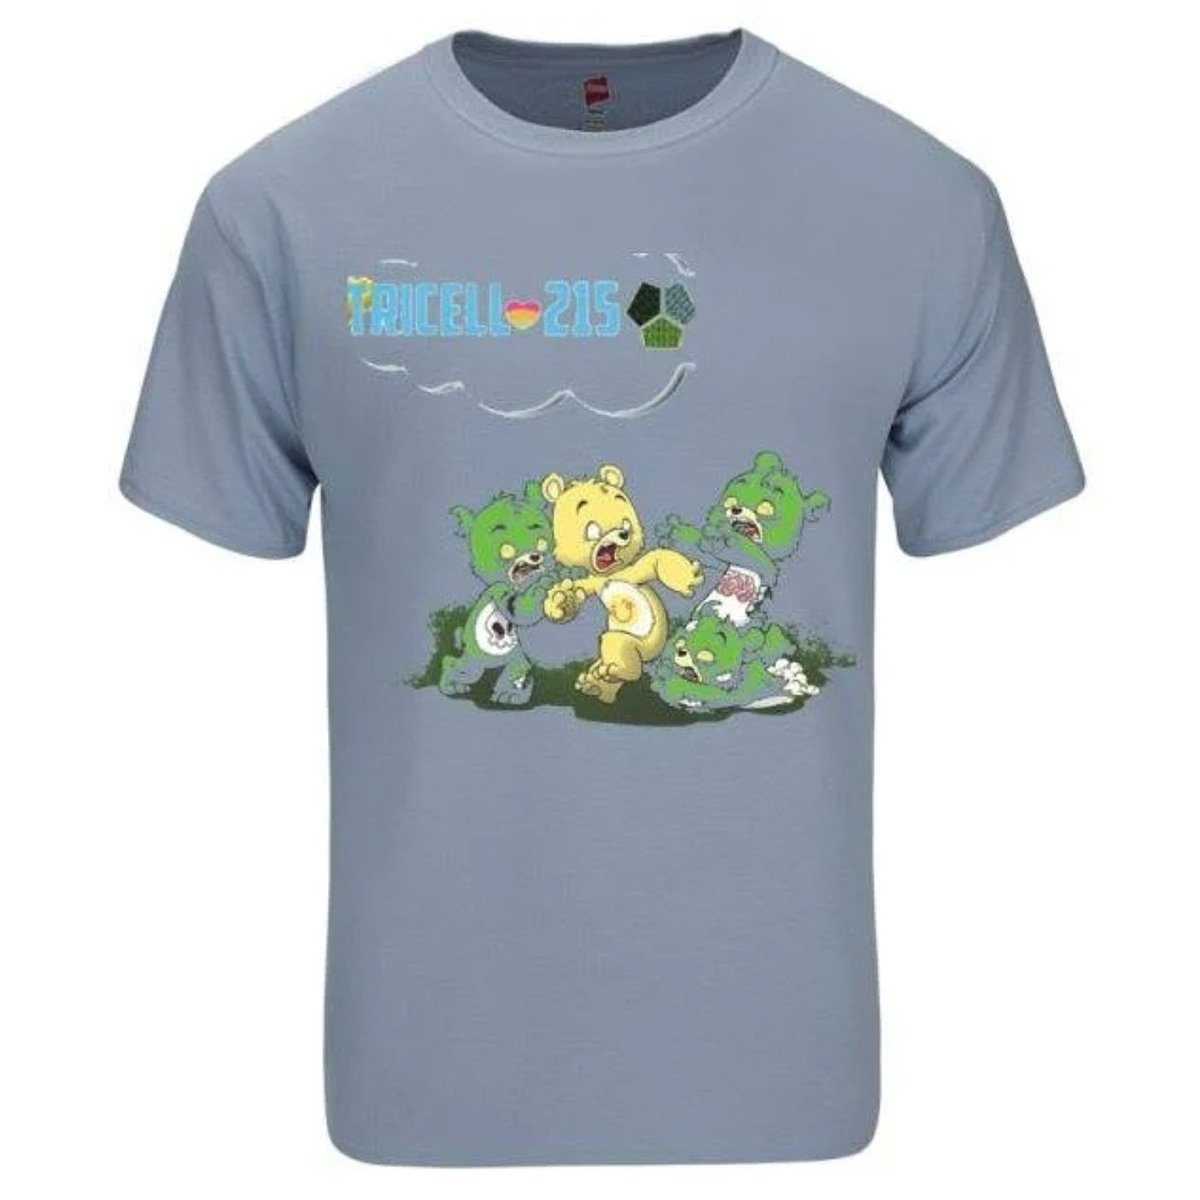 """$20.00 TRICELL 215- SCARE BEAR """" FITTED SHORT SLEEVE CREW SHIRT  ONE OF A KIND , Heat Pressed laser transfered   ALL SIZES...SMALL, LARGE, MEDIUM,LARGE, EXTRA LARGE , 2X , 3 X  Order yours here: http://tricell215.bigcartel.com/  #tricell215  #carebear #zombie  #215"""